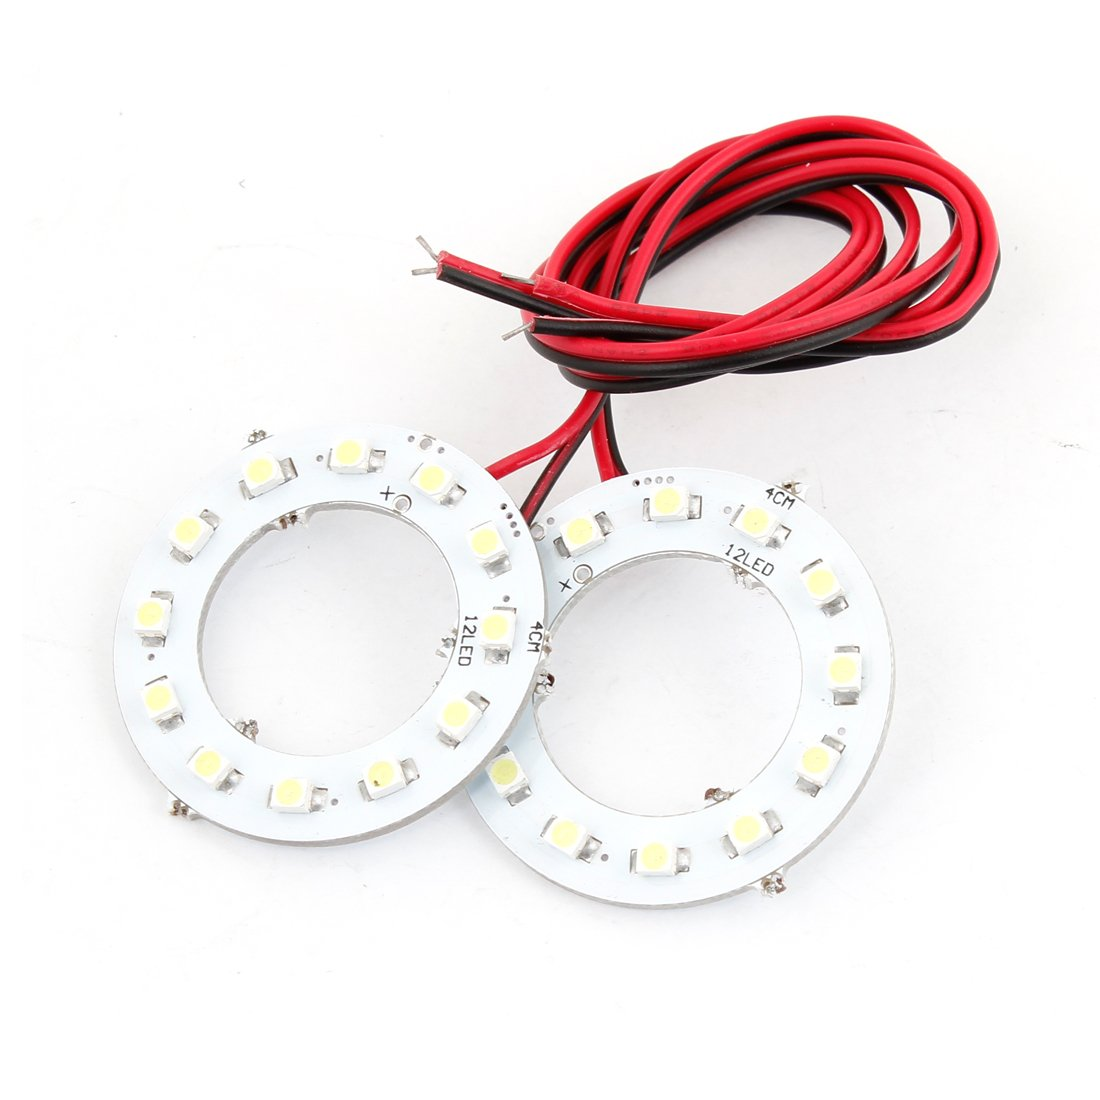 2 x 40mm White 12-SMD LED Rear Angel Eyes Halo Ring uxcell a13121600ux0144